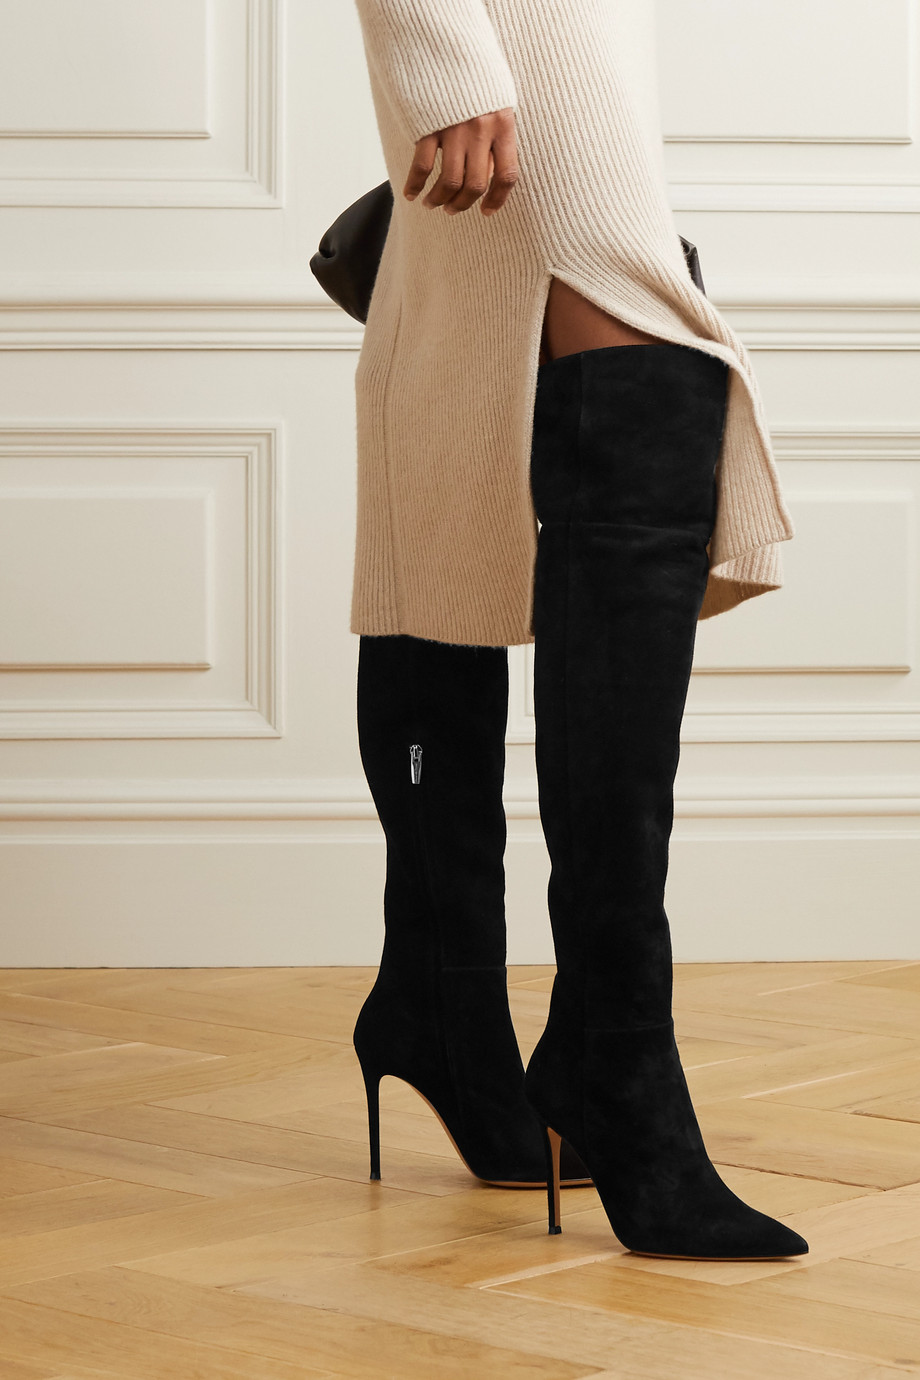 Gianvito Rossi 105 suede over-the-knee boots